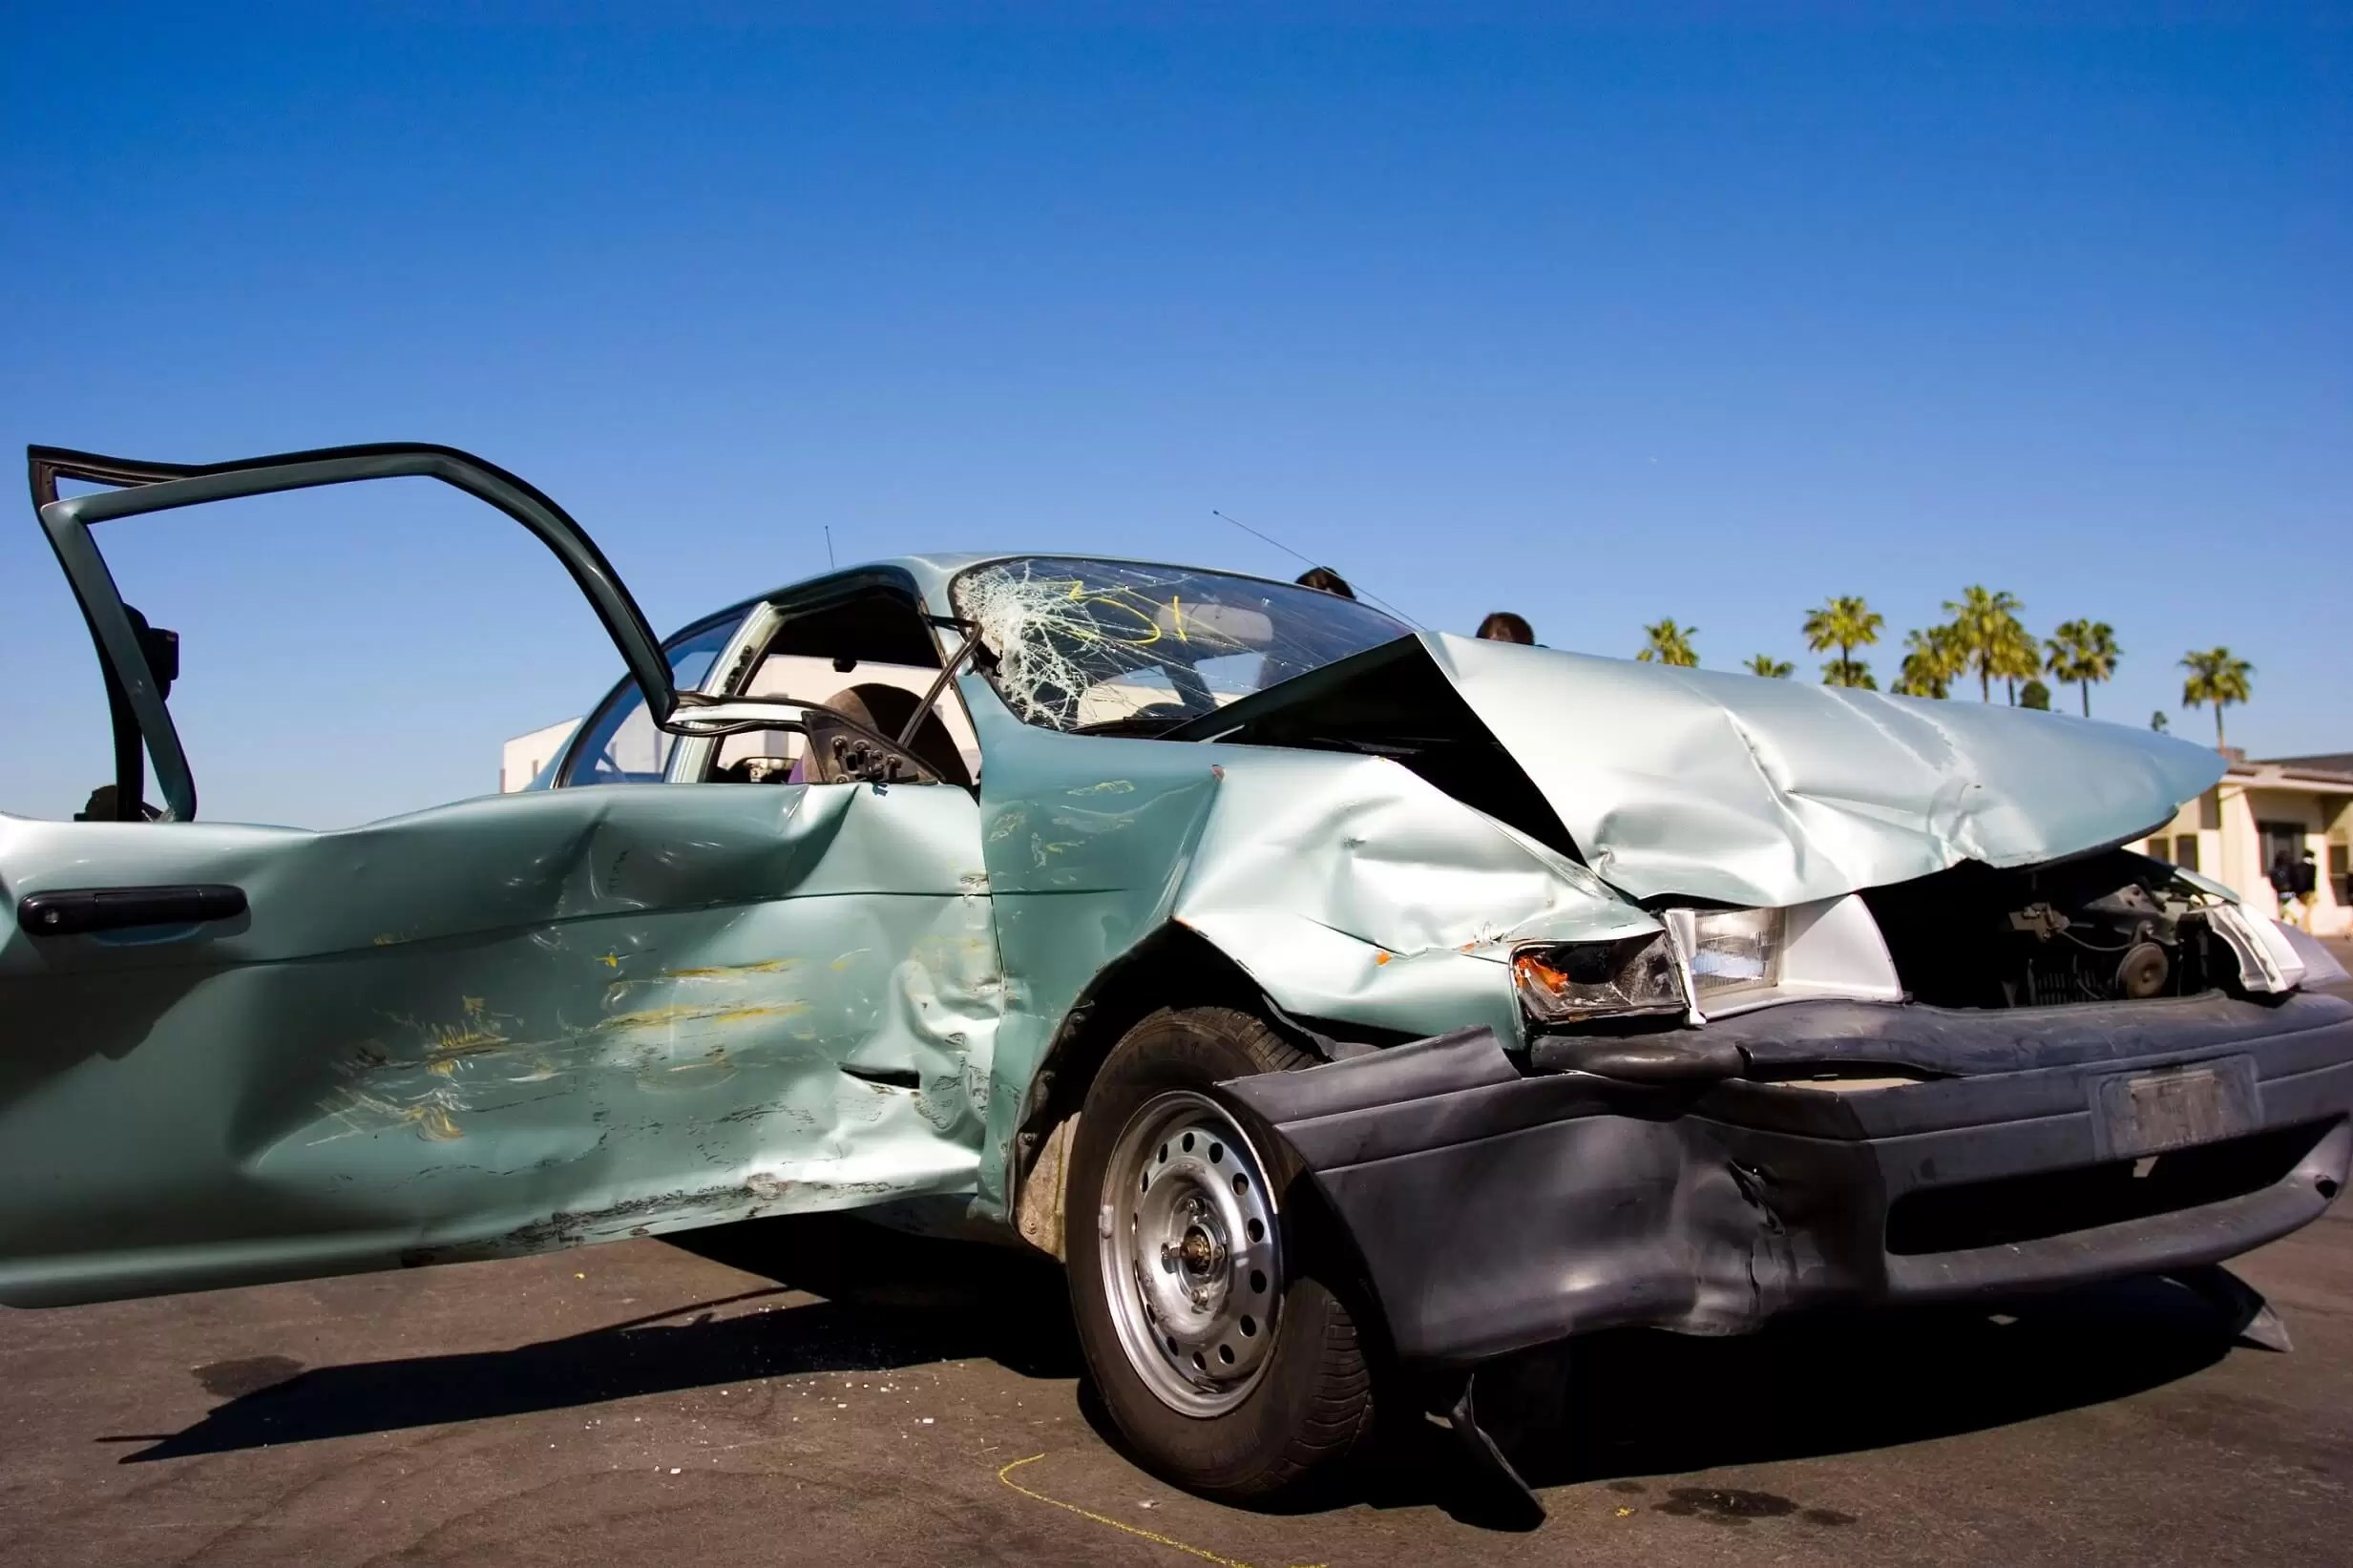 When A Leased Car Is Totalled What Happens?